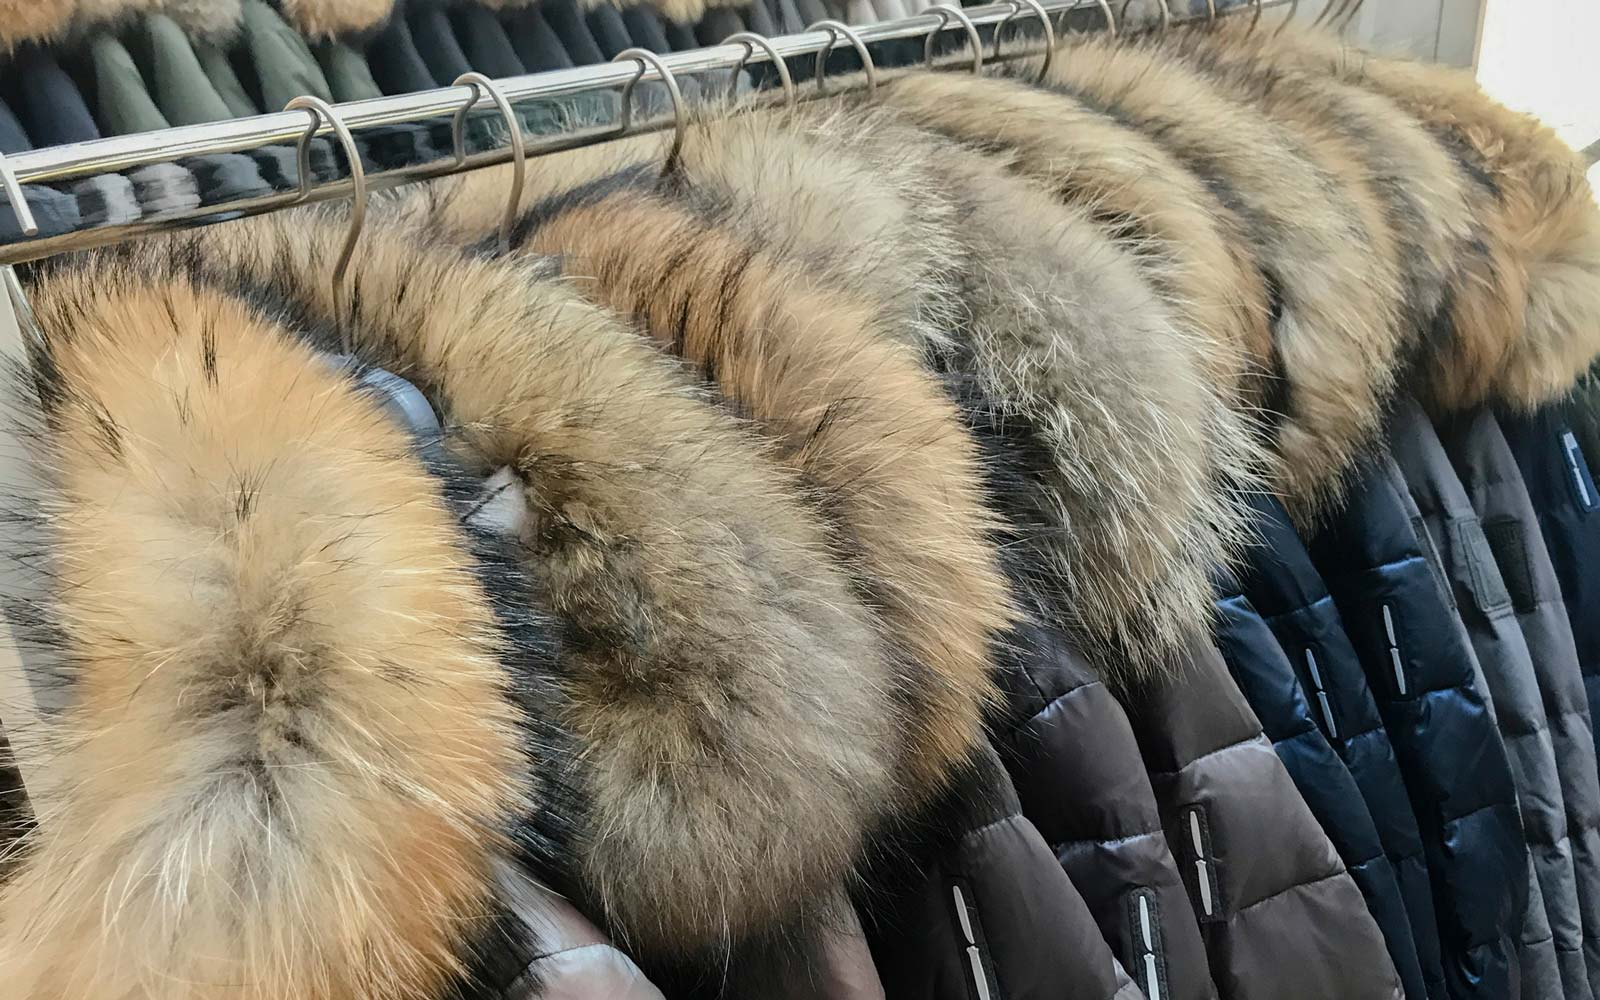 Close-Up Of Fur Coats Hanging On Rack